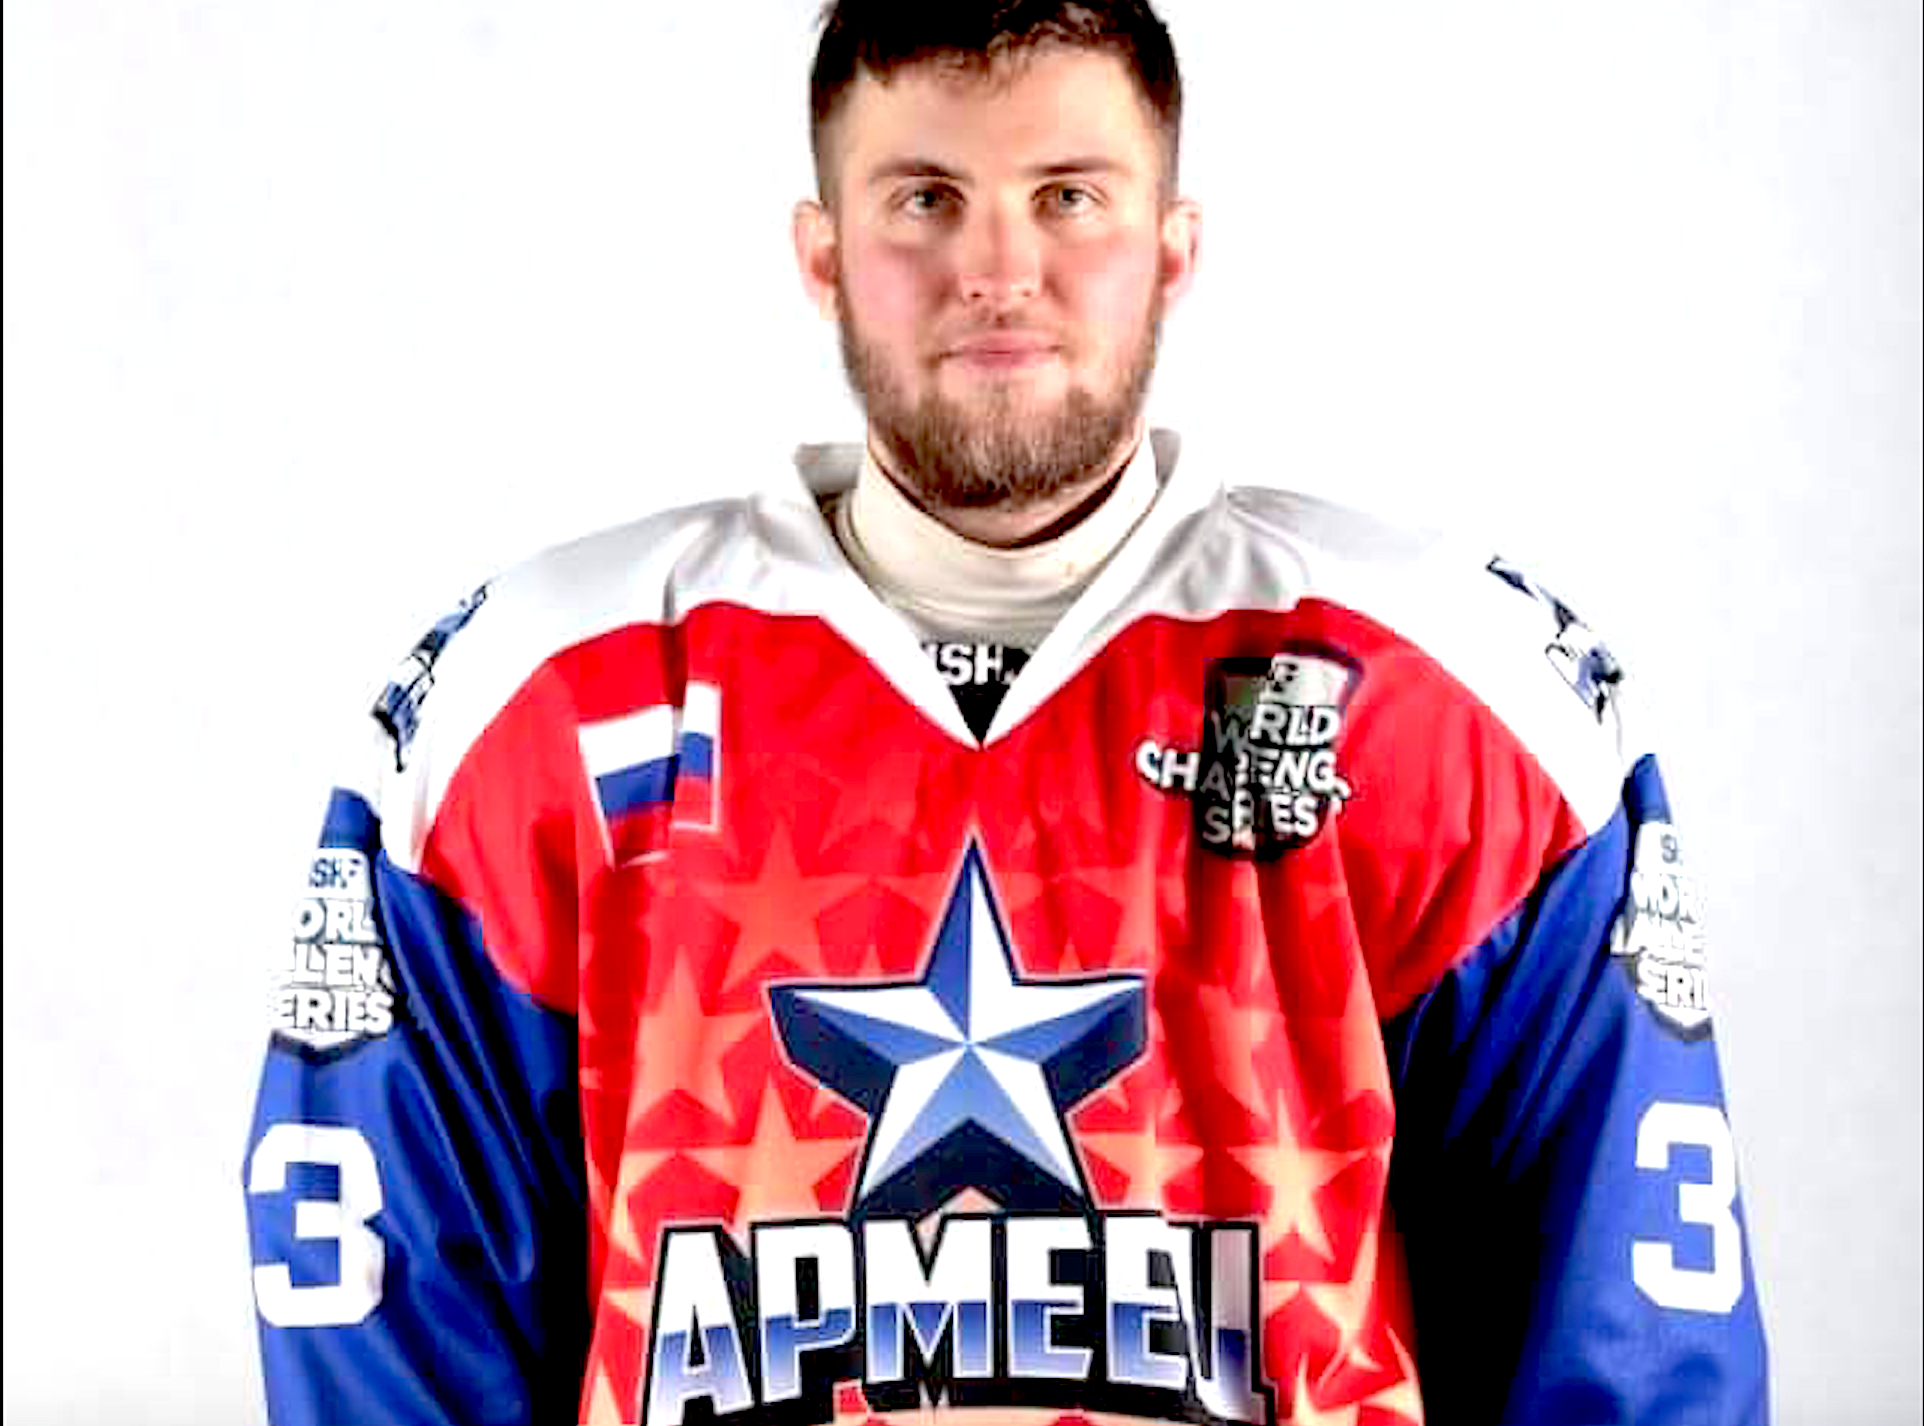 INTERVIEW WITH ARMEETS PLAYER – NIKITA BOKOV